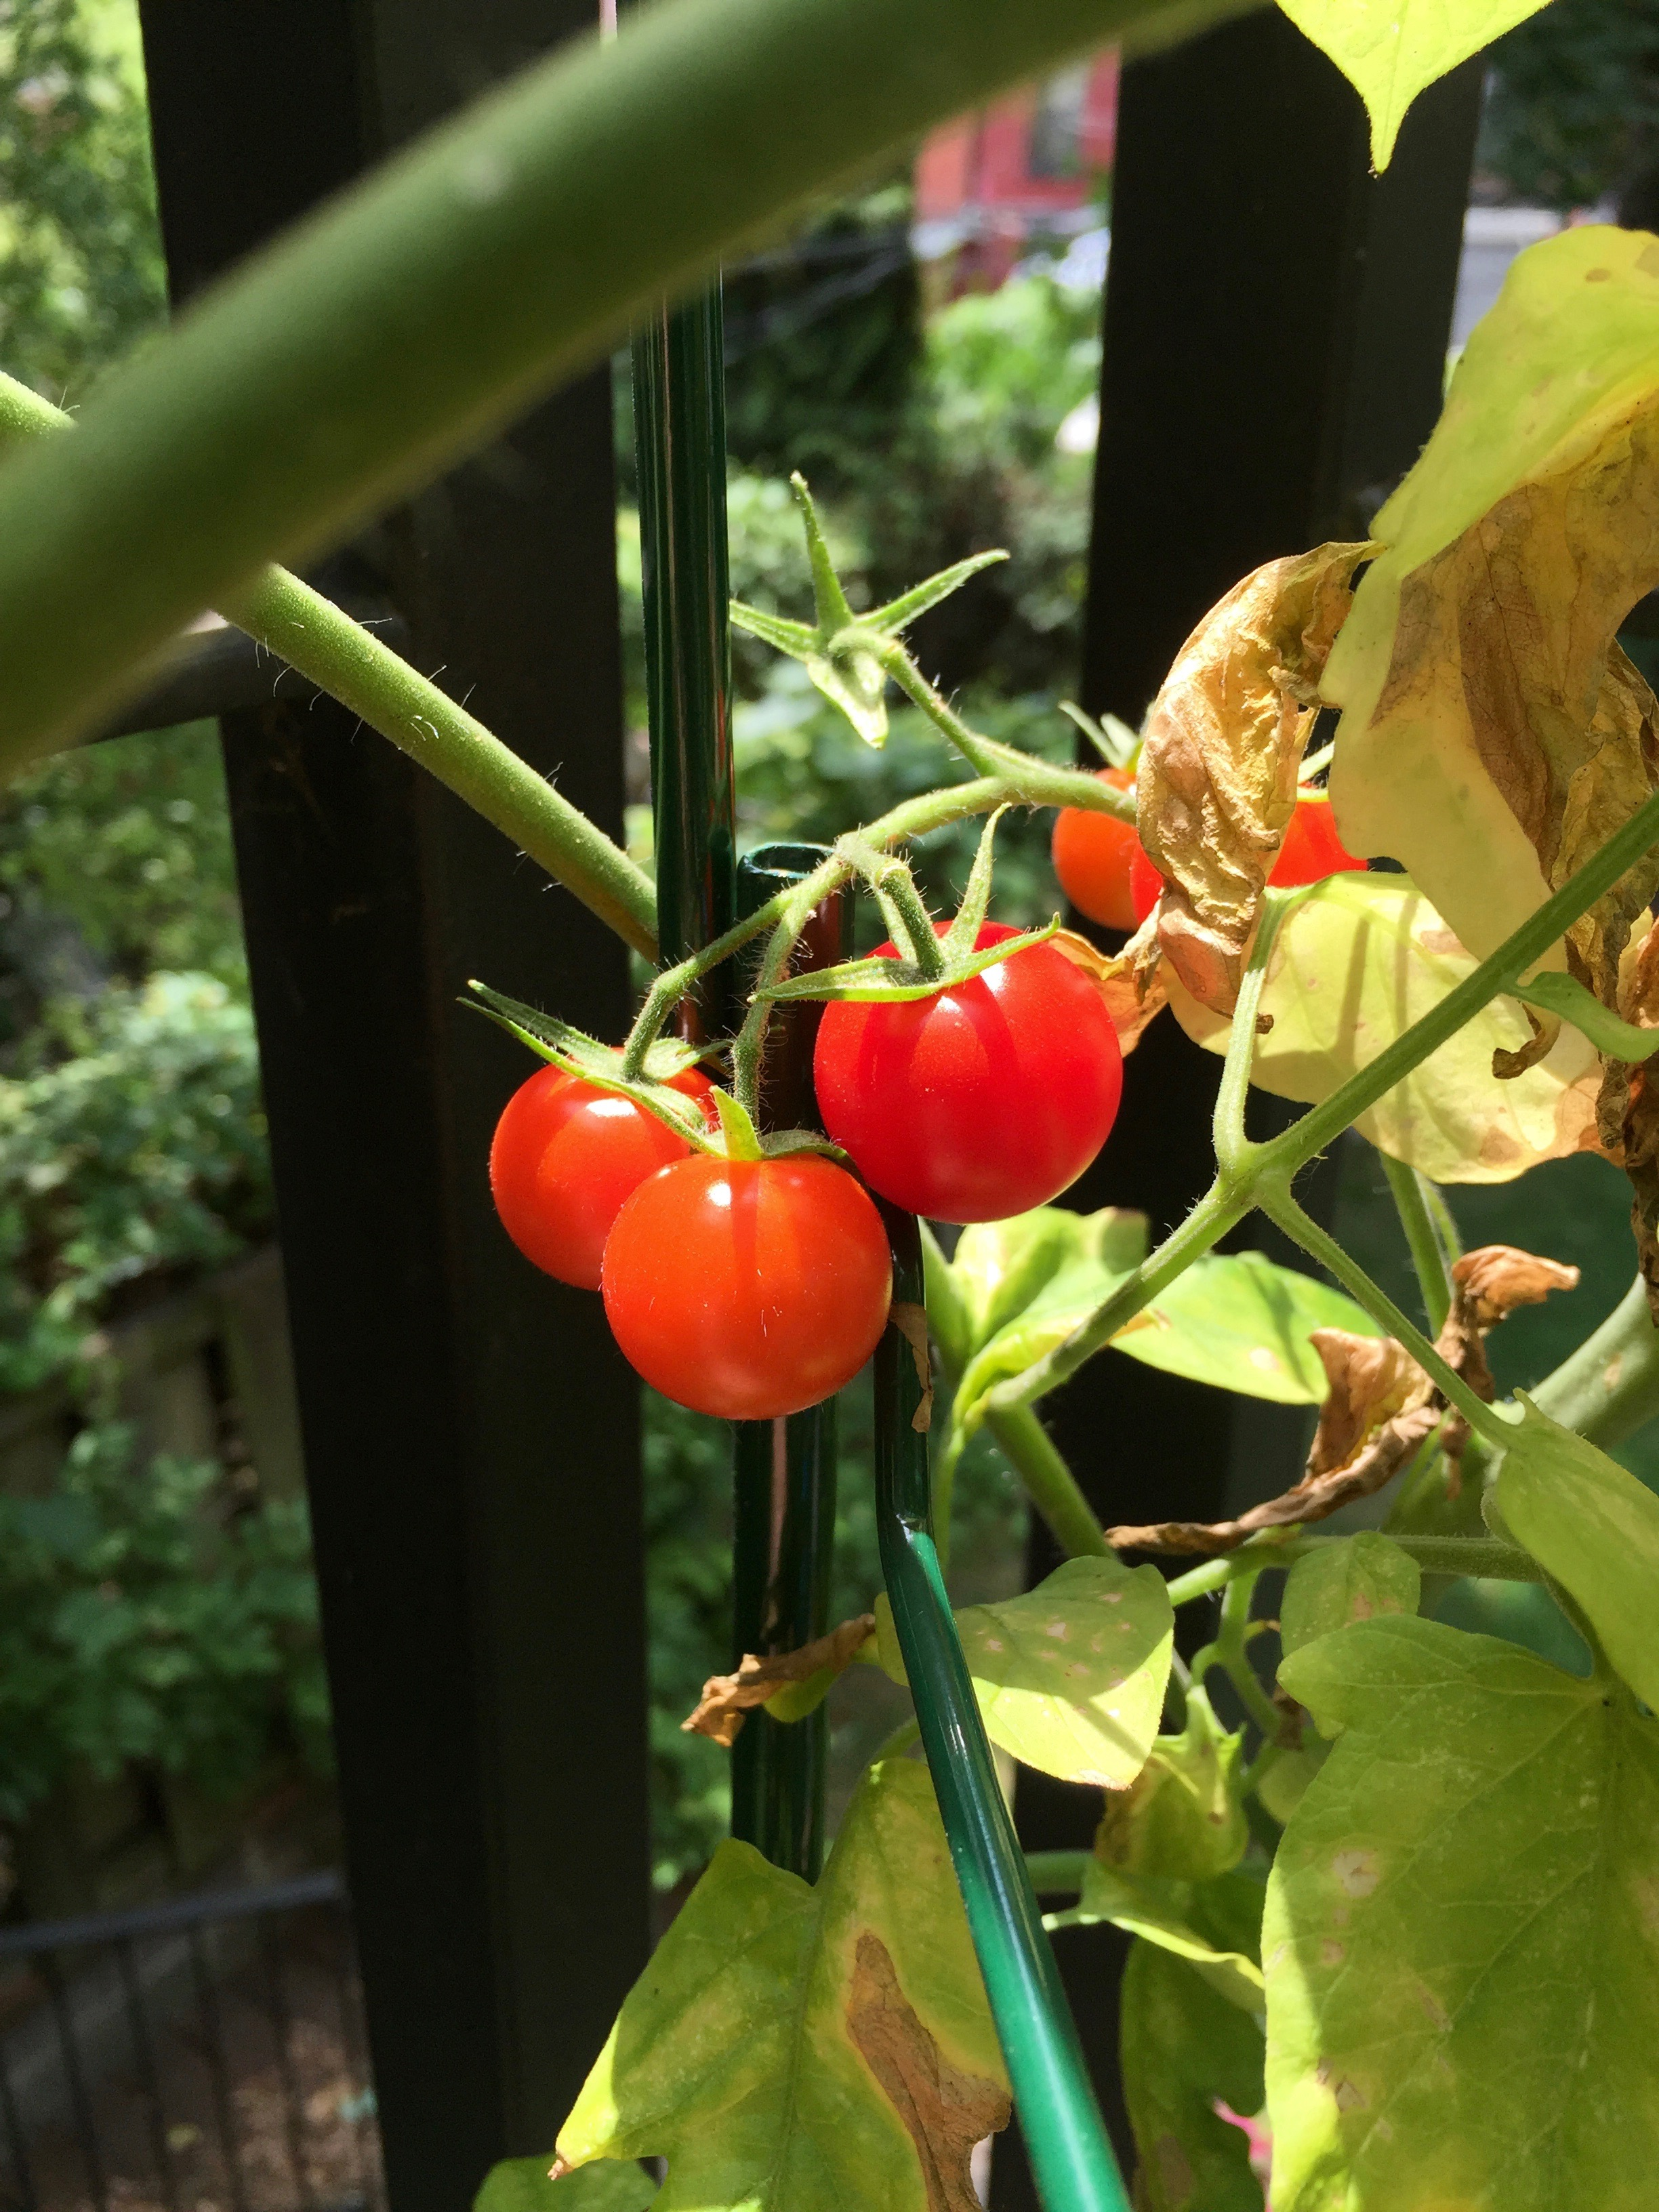 Super Sweet 100 tomatoes grown on my patio.